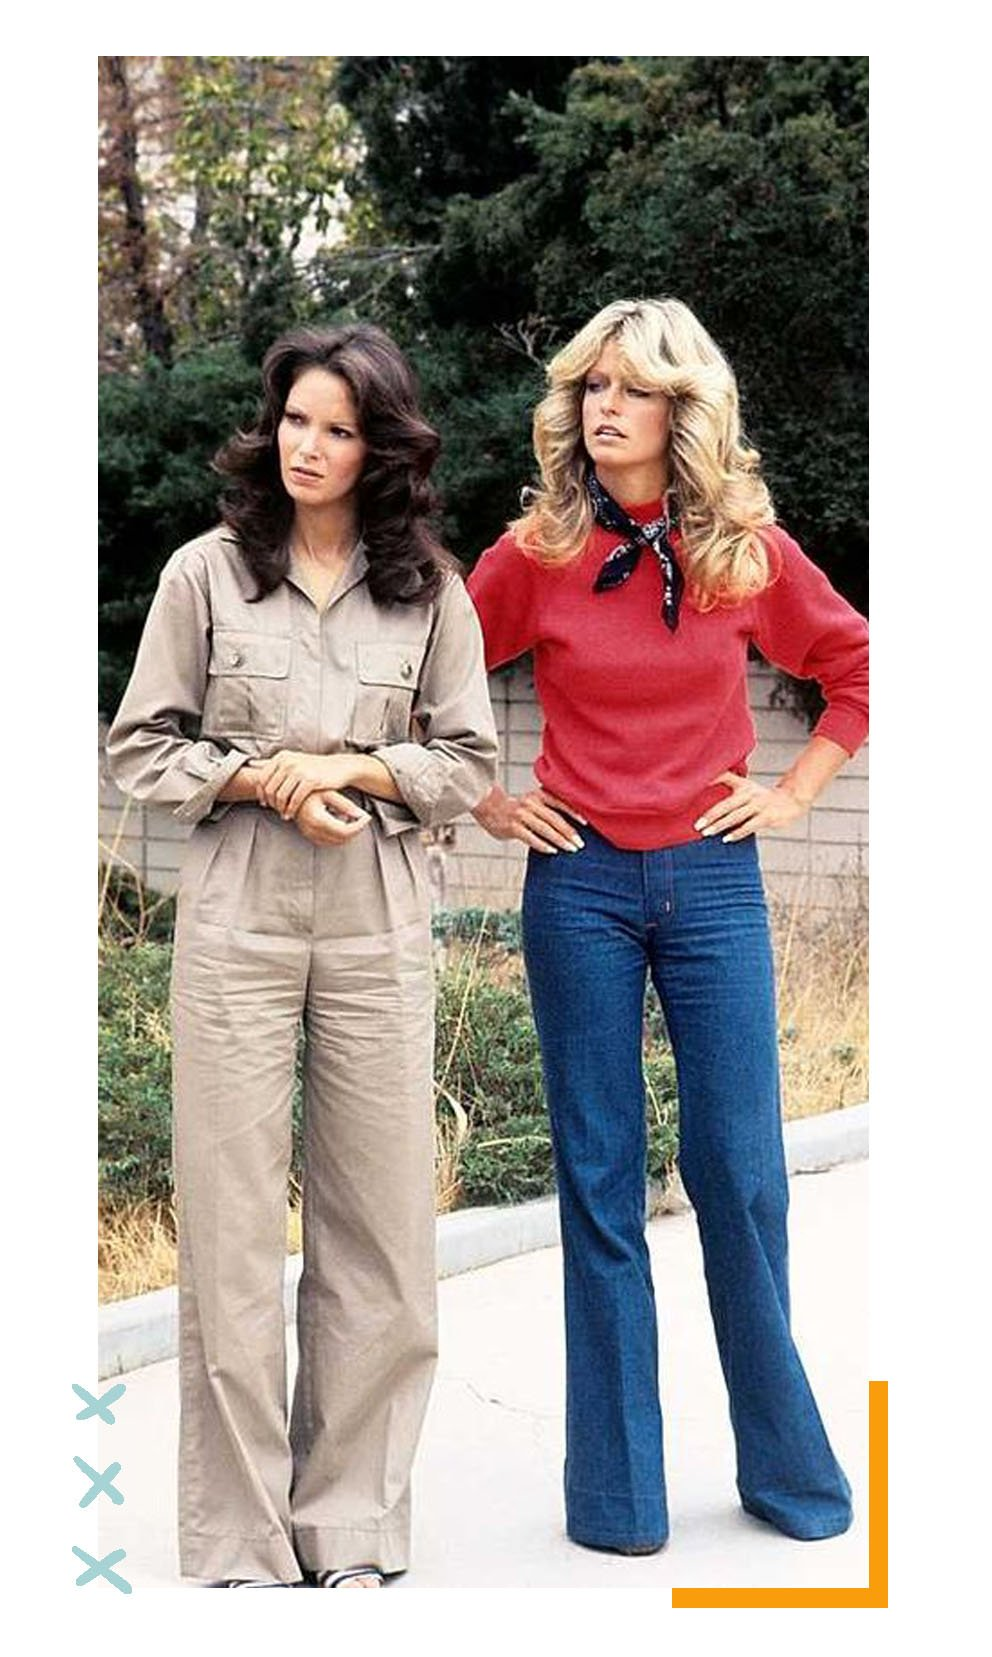 It girl - Anos 70's - Anos 70's - Inverno - Street Style